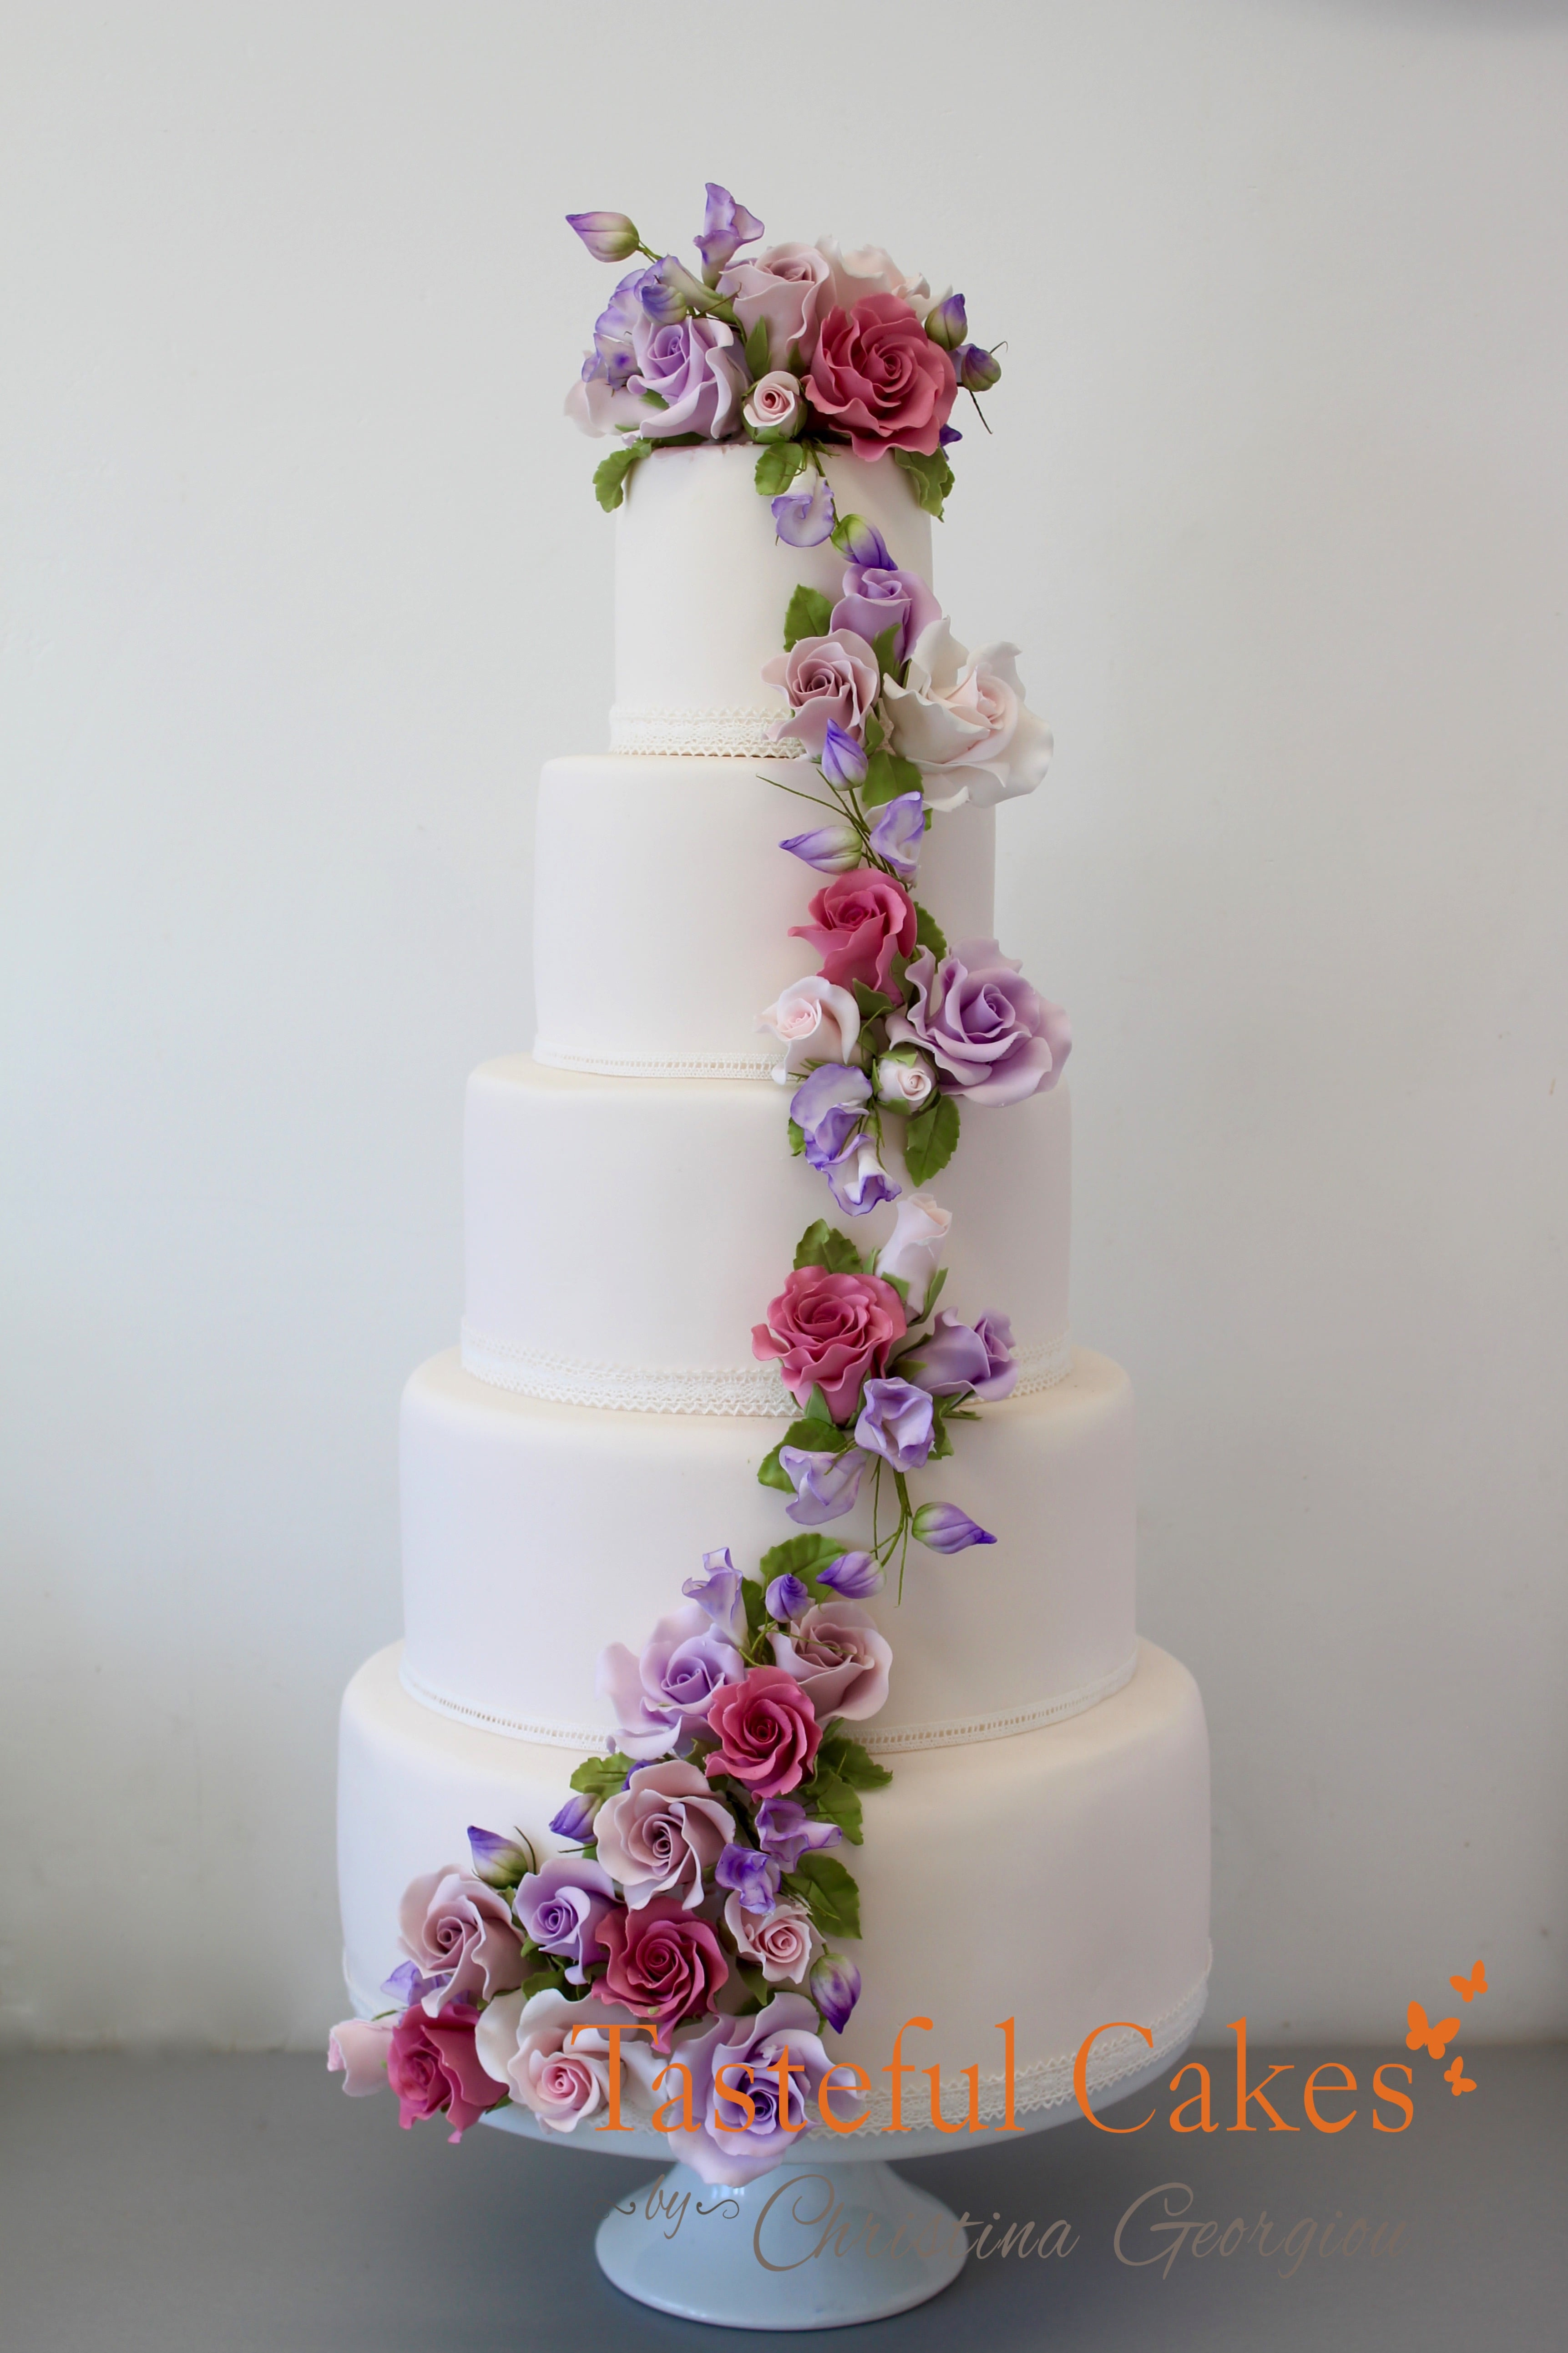 Tasteful Cakes By Christina Georgiou | Cascading Sugar Floral, Rose ...